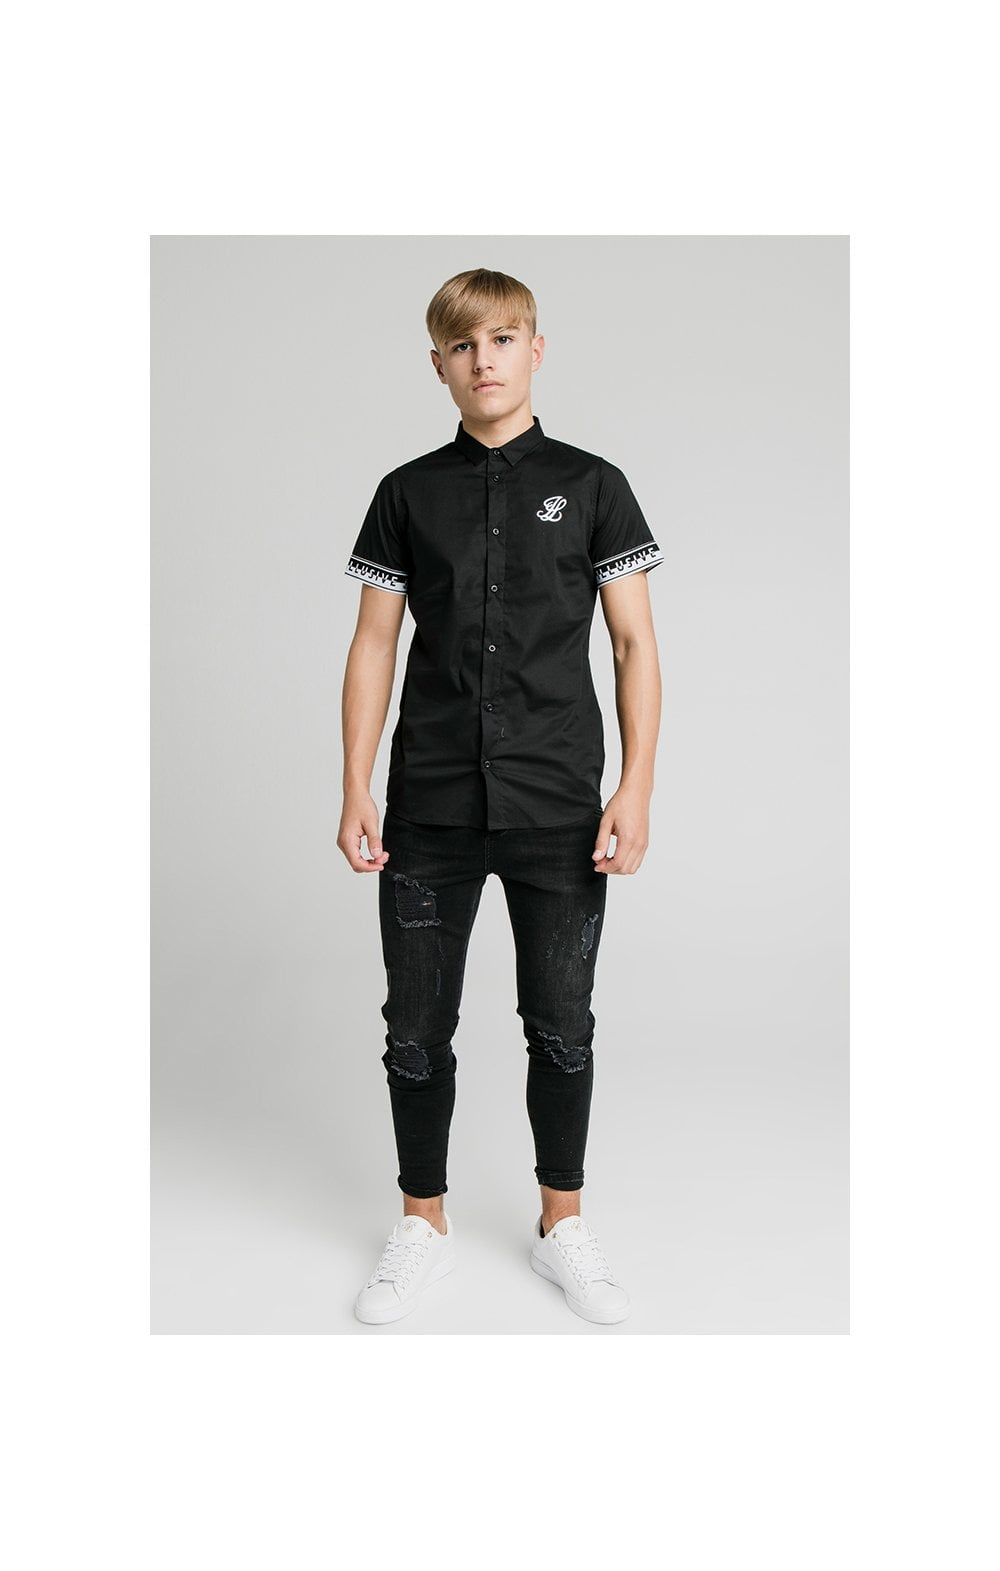 Illusive London Contrast Tape S/S Shirt - Black (1)